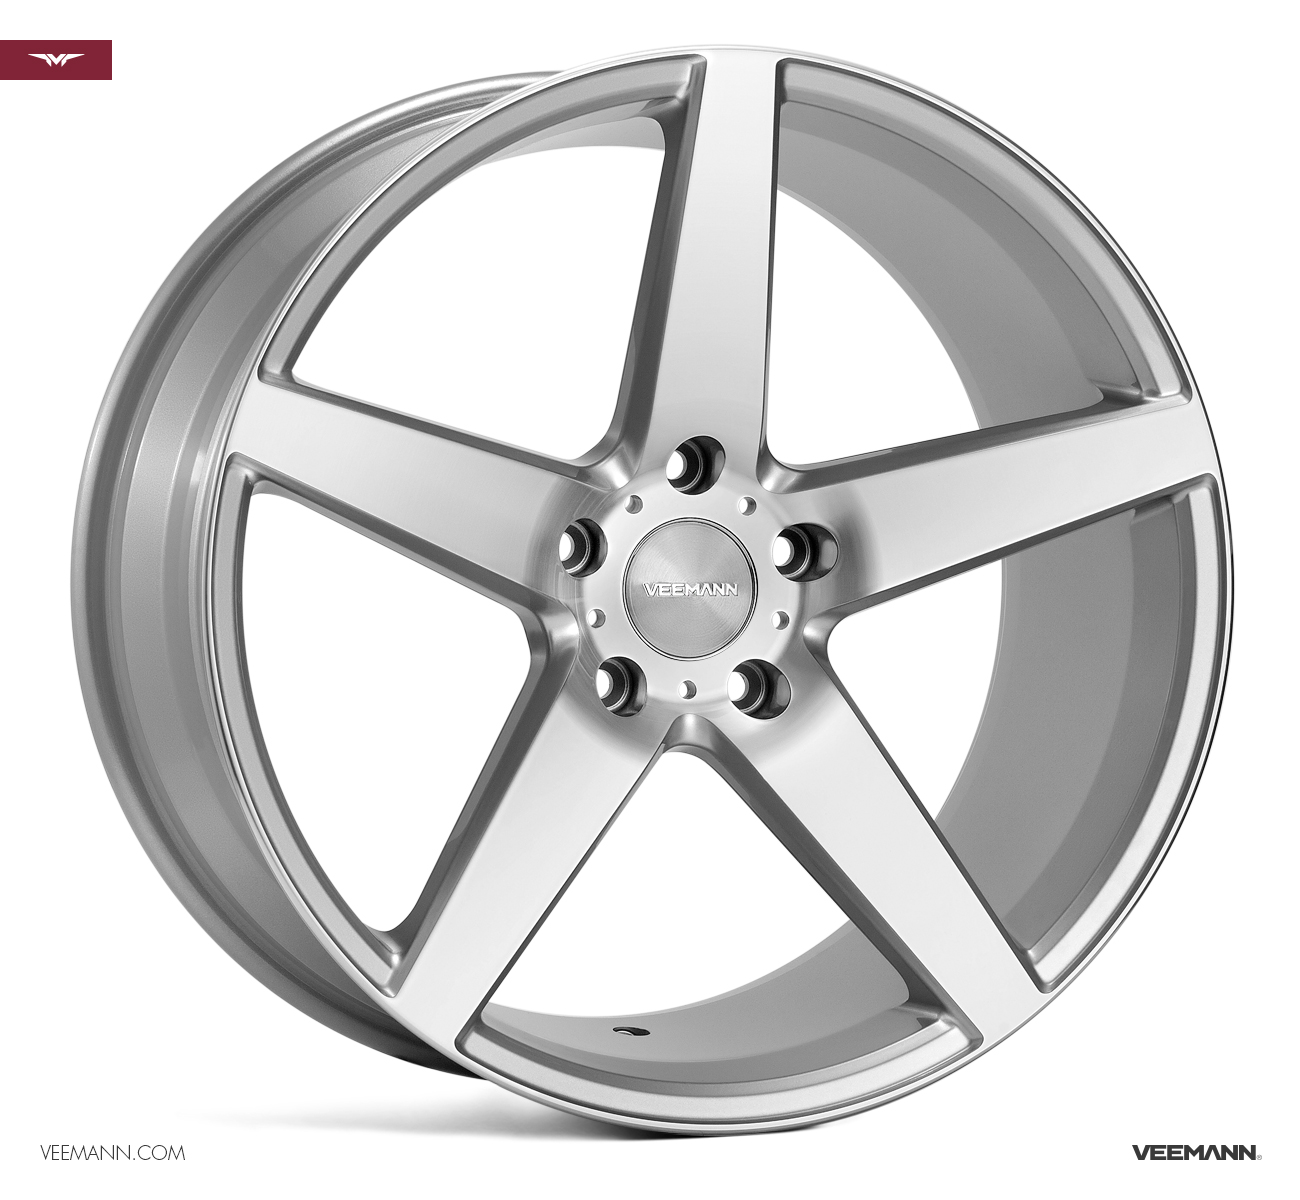 "NEW 20"" VEEMANN V-FS8 5 SPOKE CONCAVE ALLOYS IN SILVER WITH POLISHED FACE, WIDER 10"" REARS et35/38"